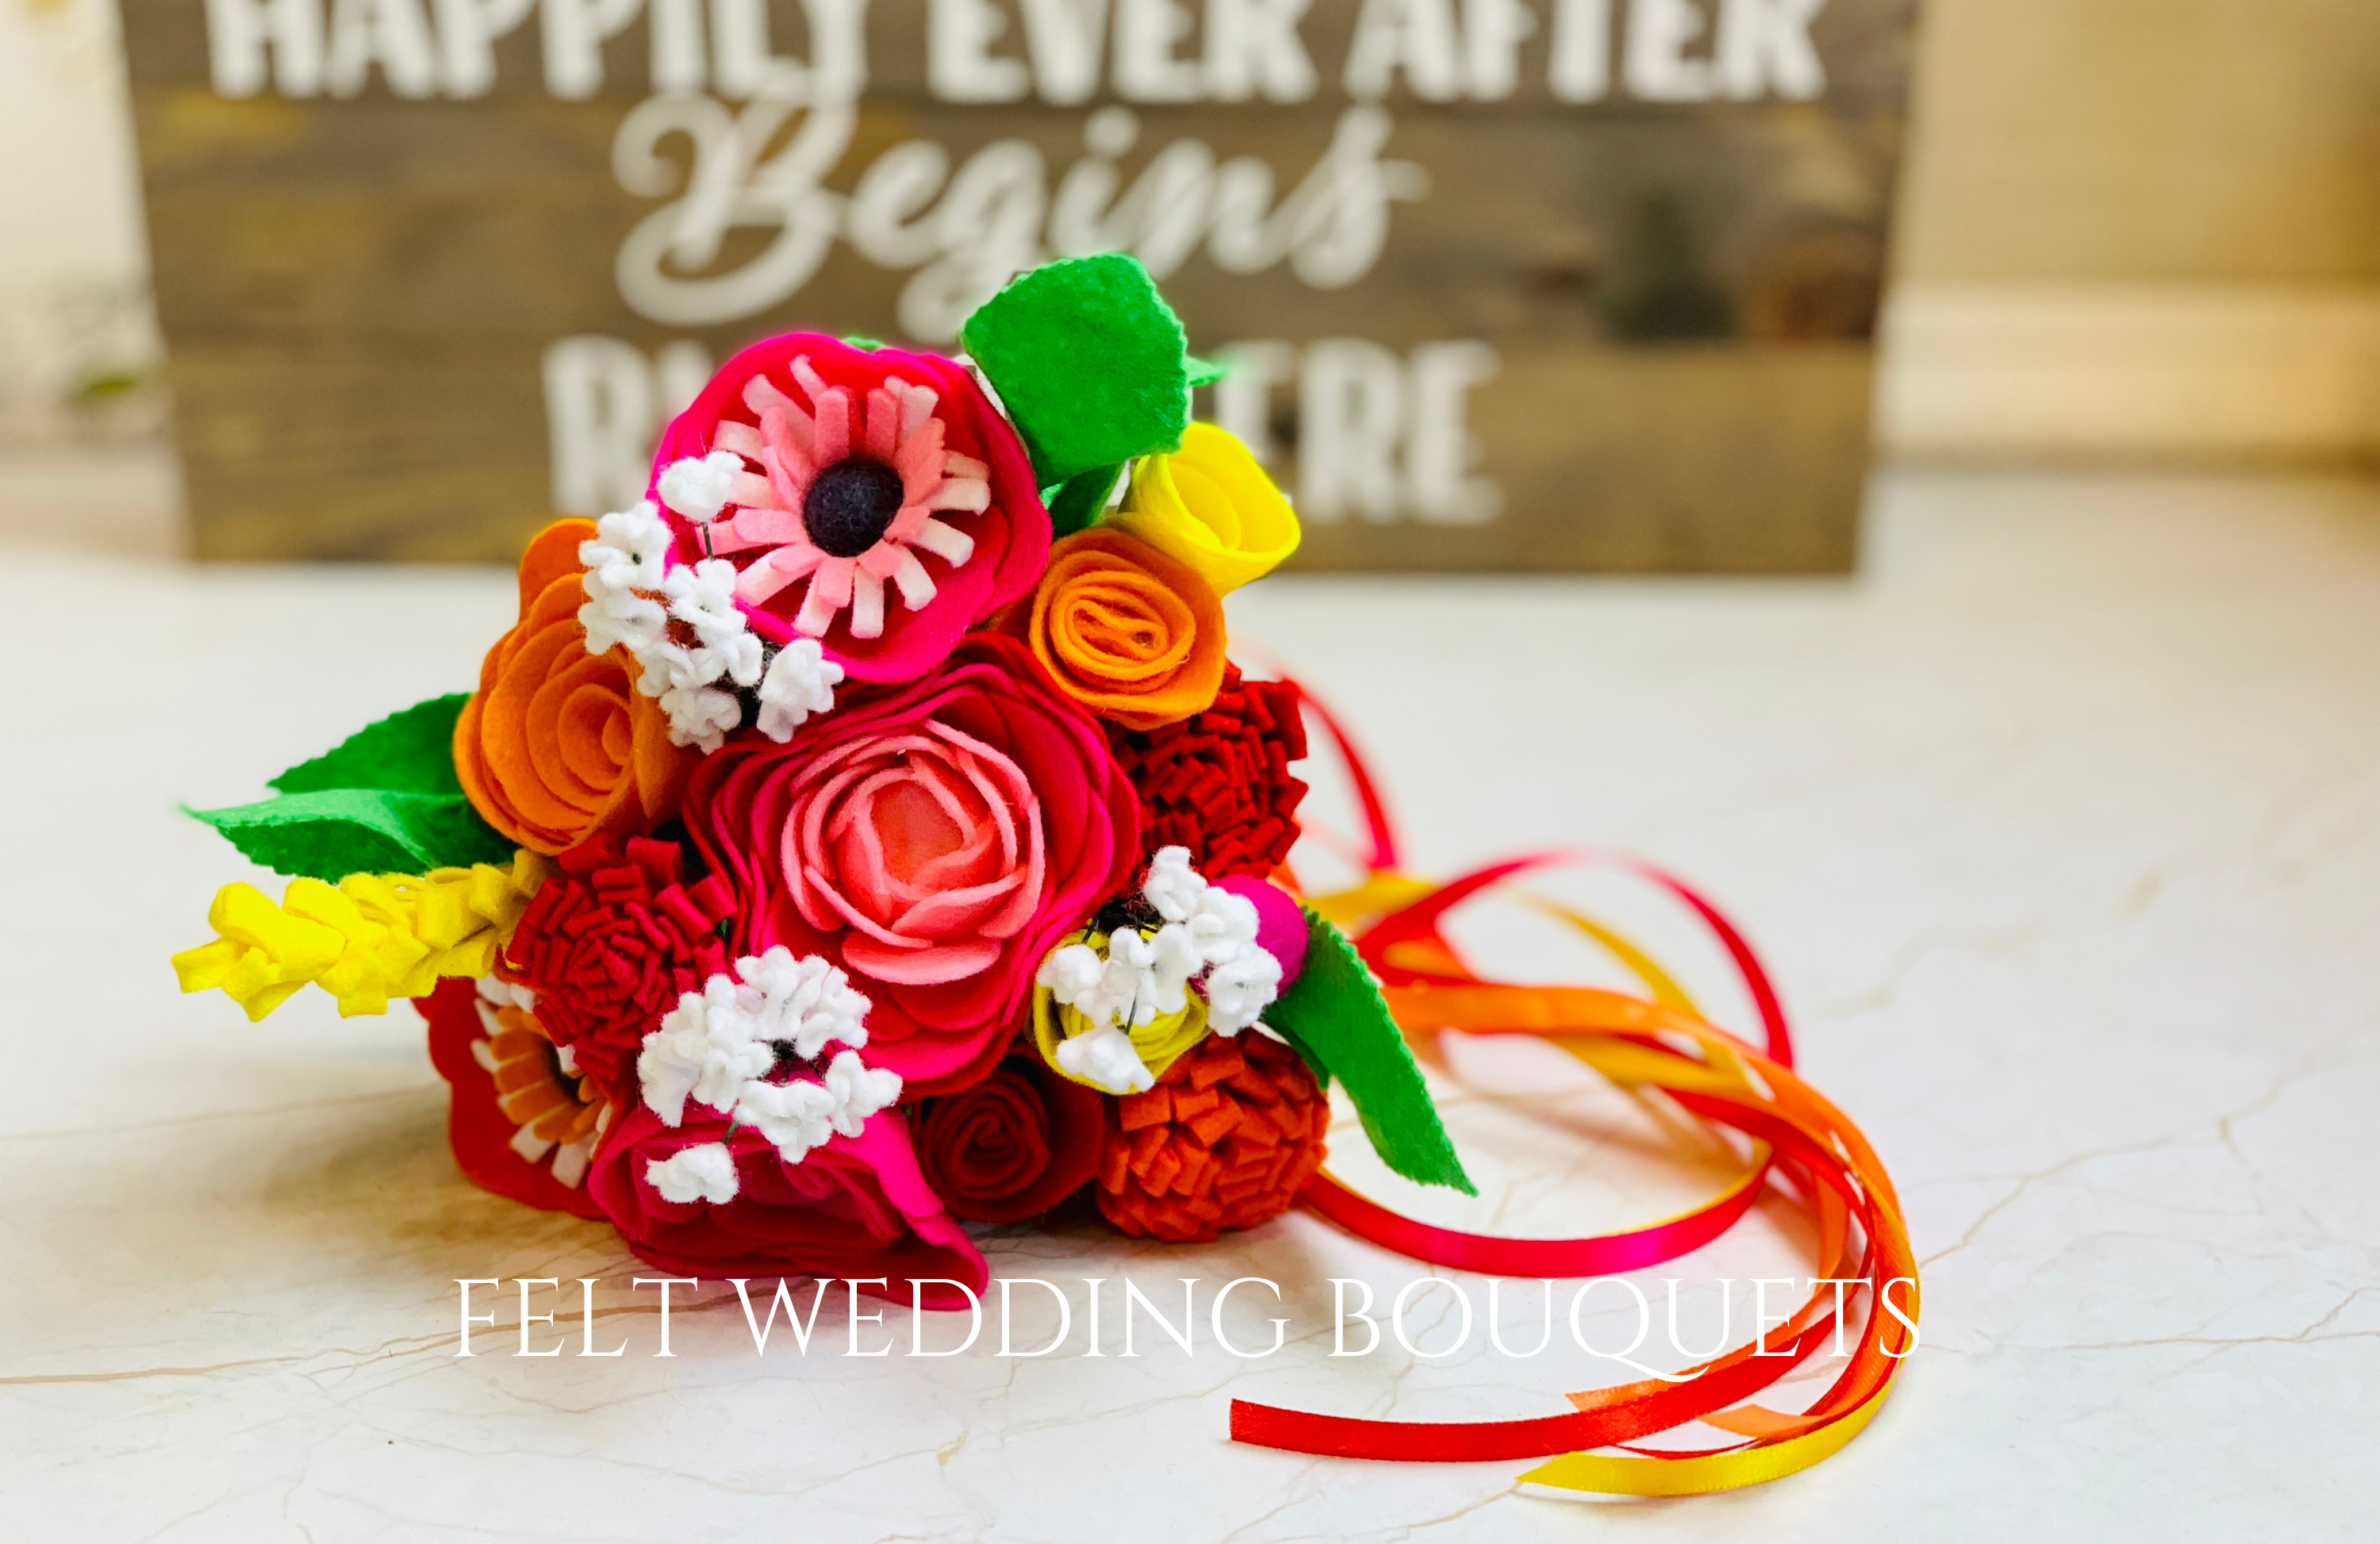 Felt Wedding Bouquets